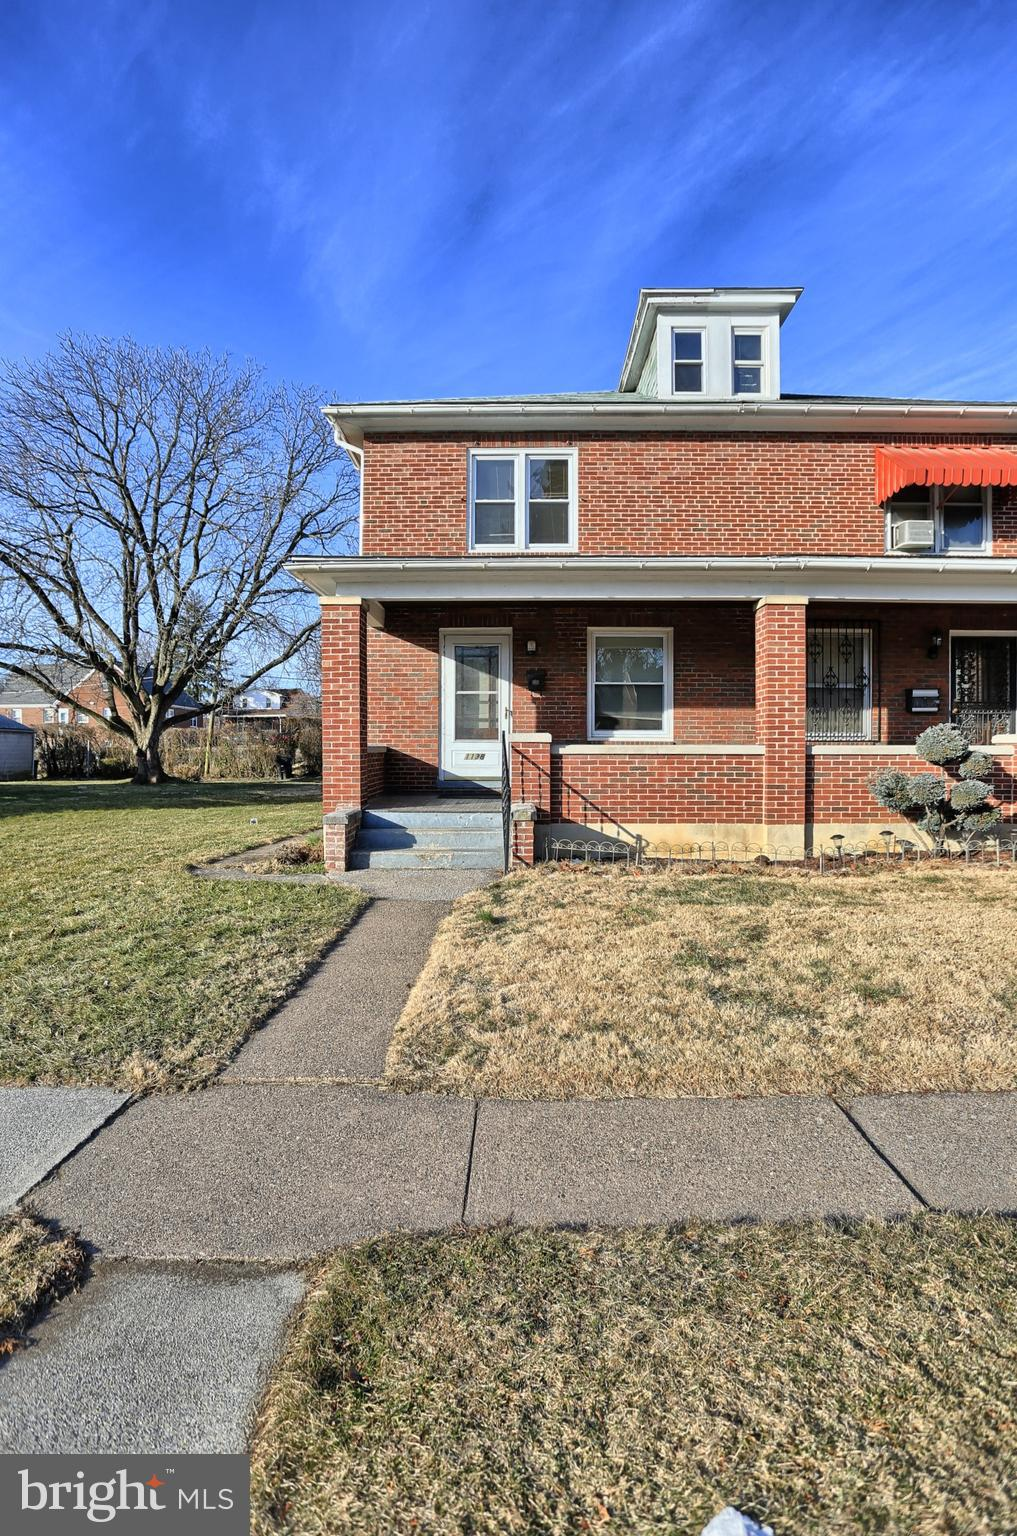 WELCOME to 1138 Rolleston St!